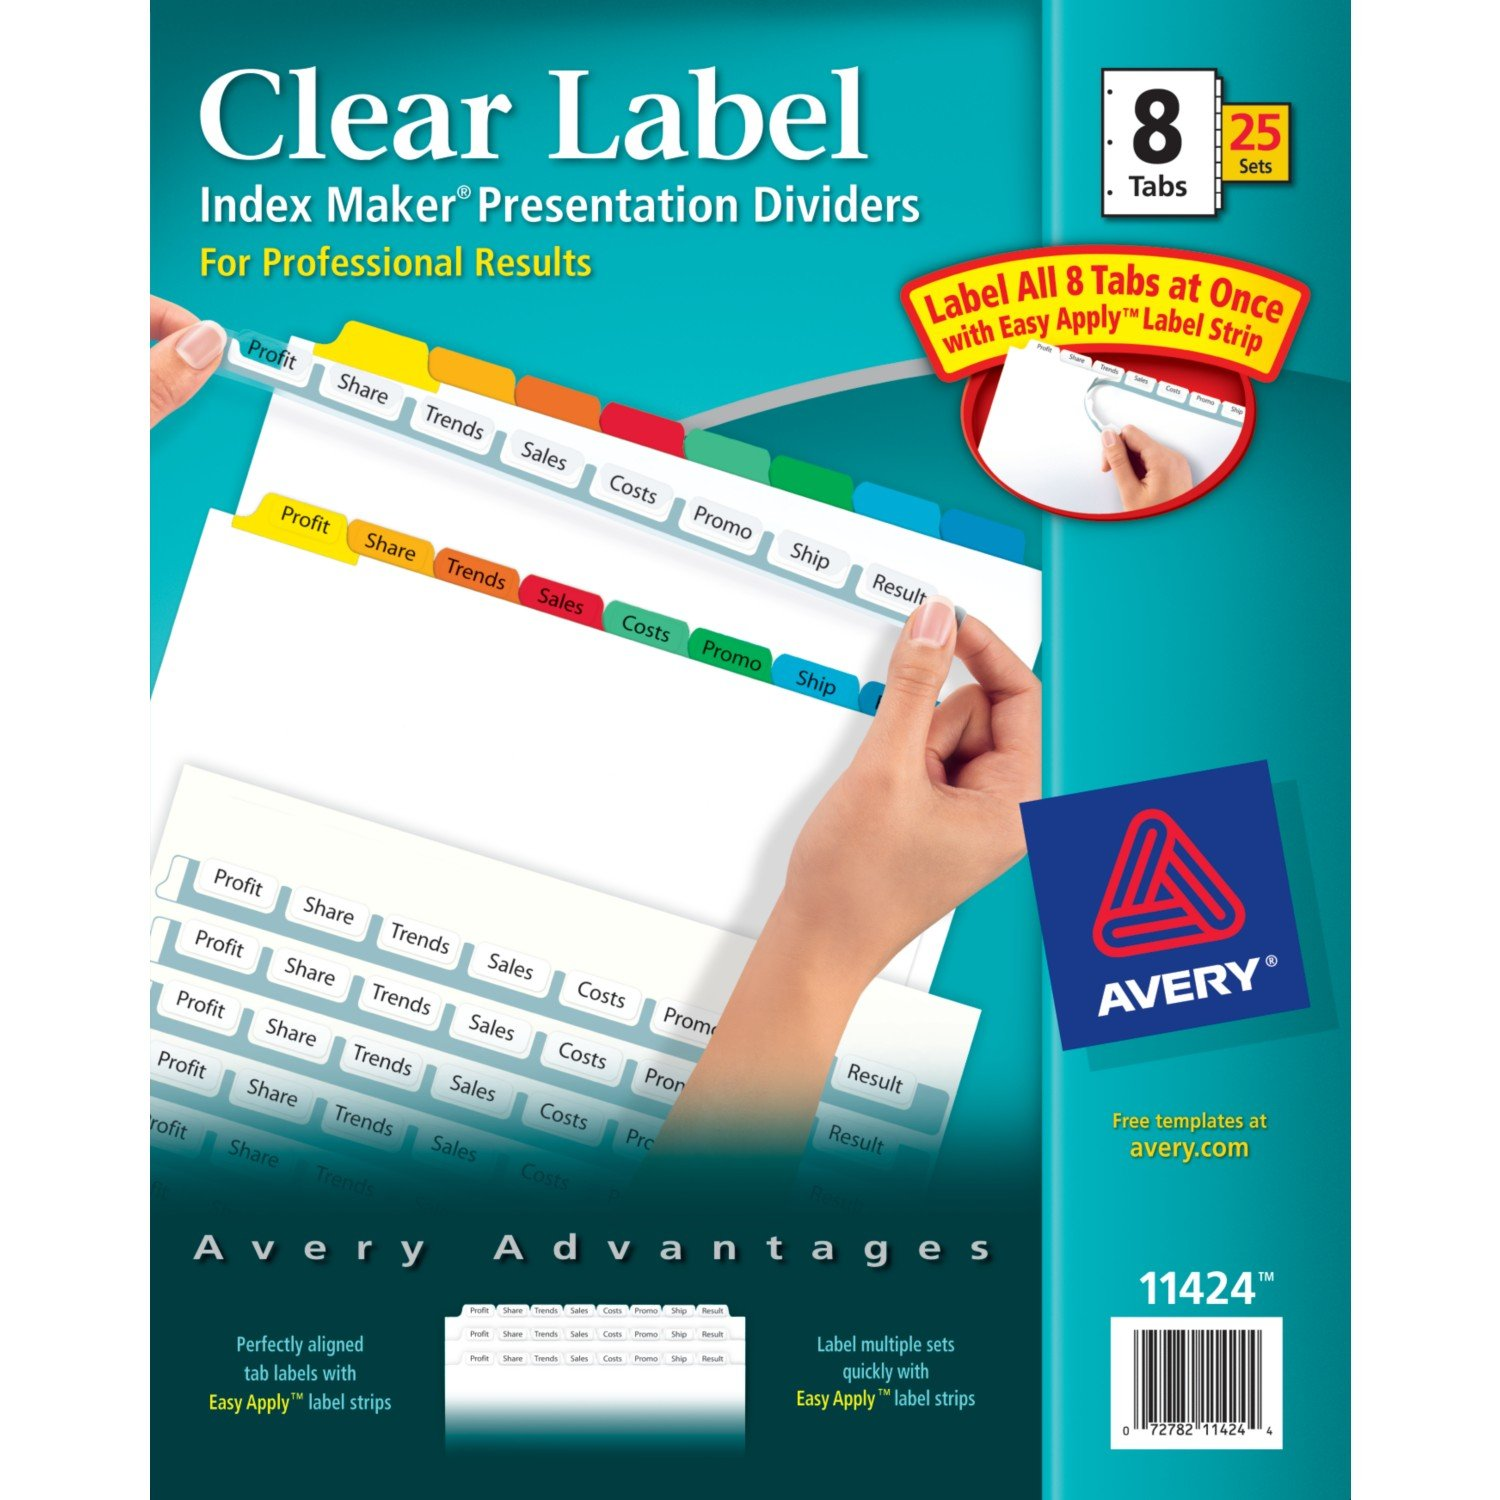 Free Shipping Avery Index Maker Clear Label Dividers Easy Apply